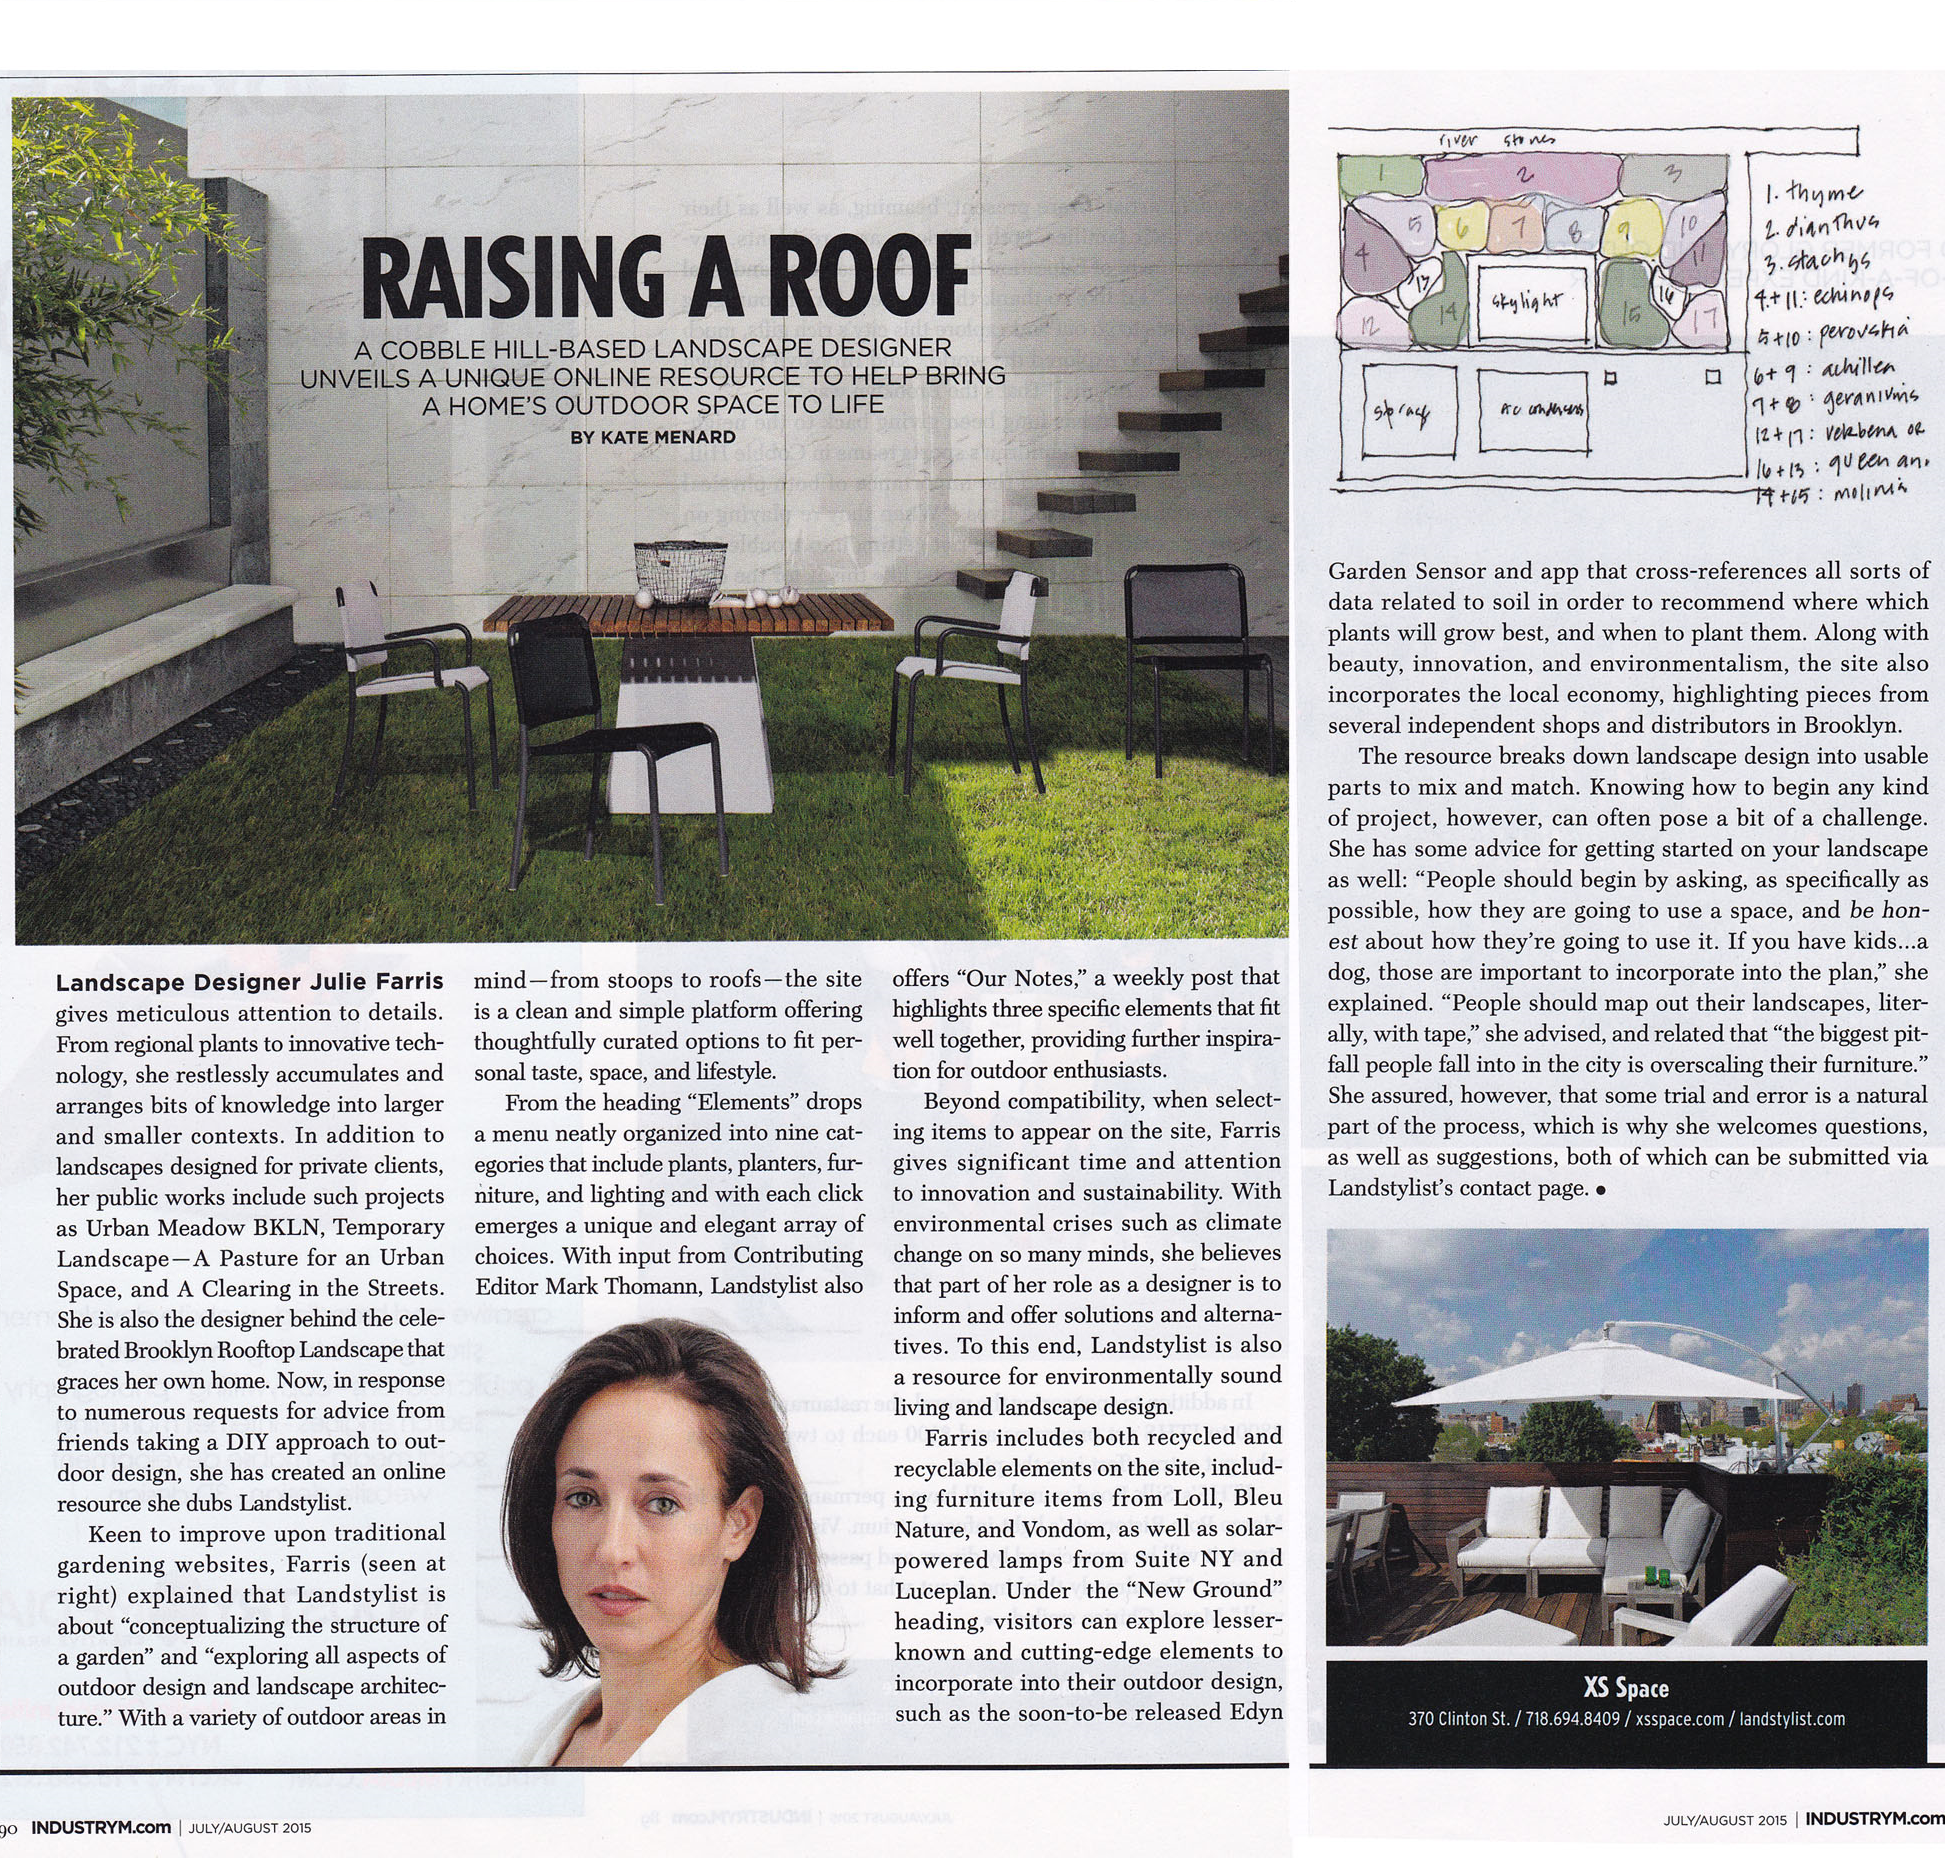 Brooklyn Industry Magazine July/August 2015 Issue  View Article here